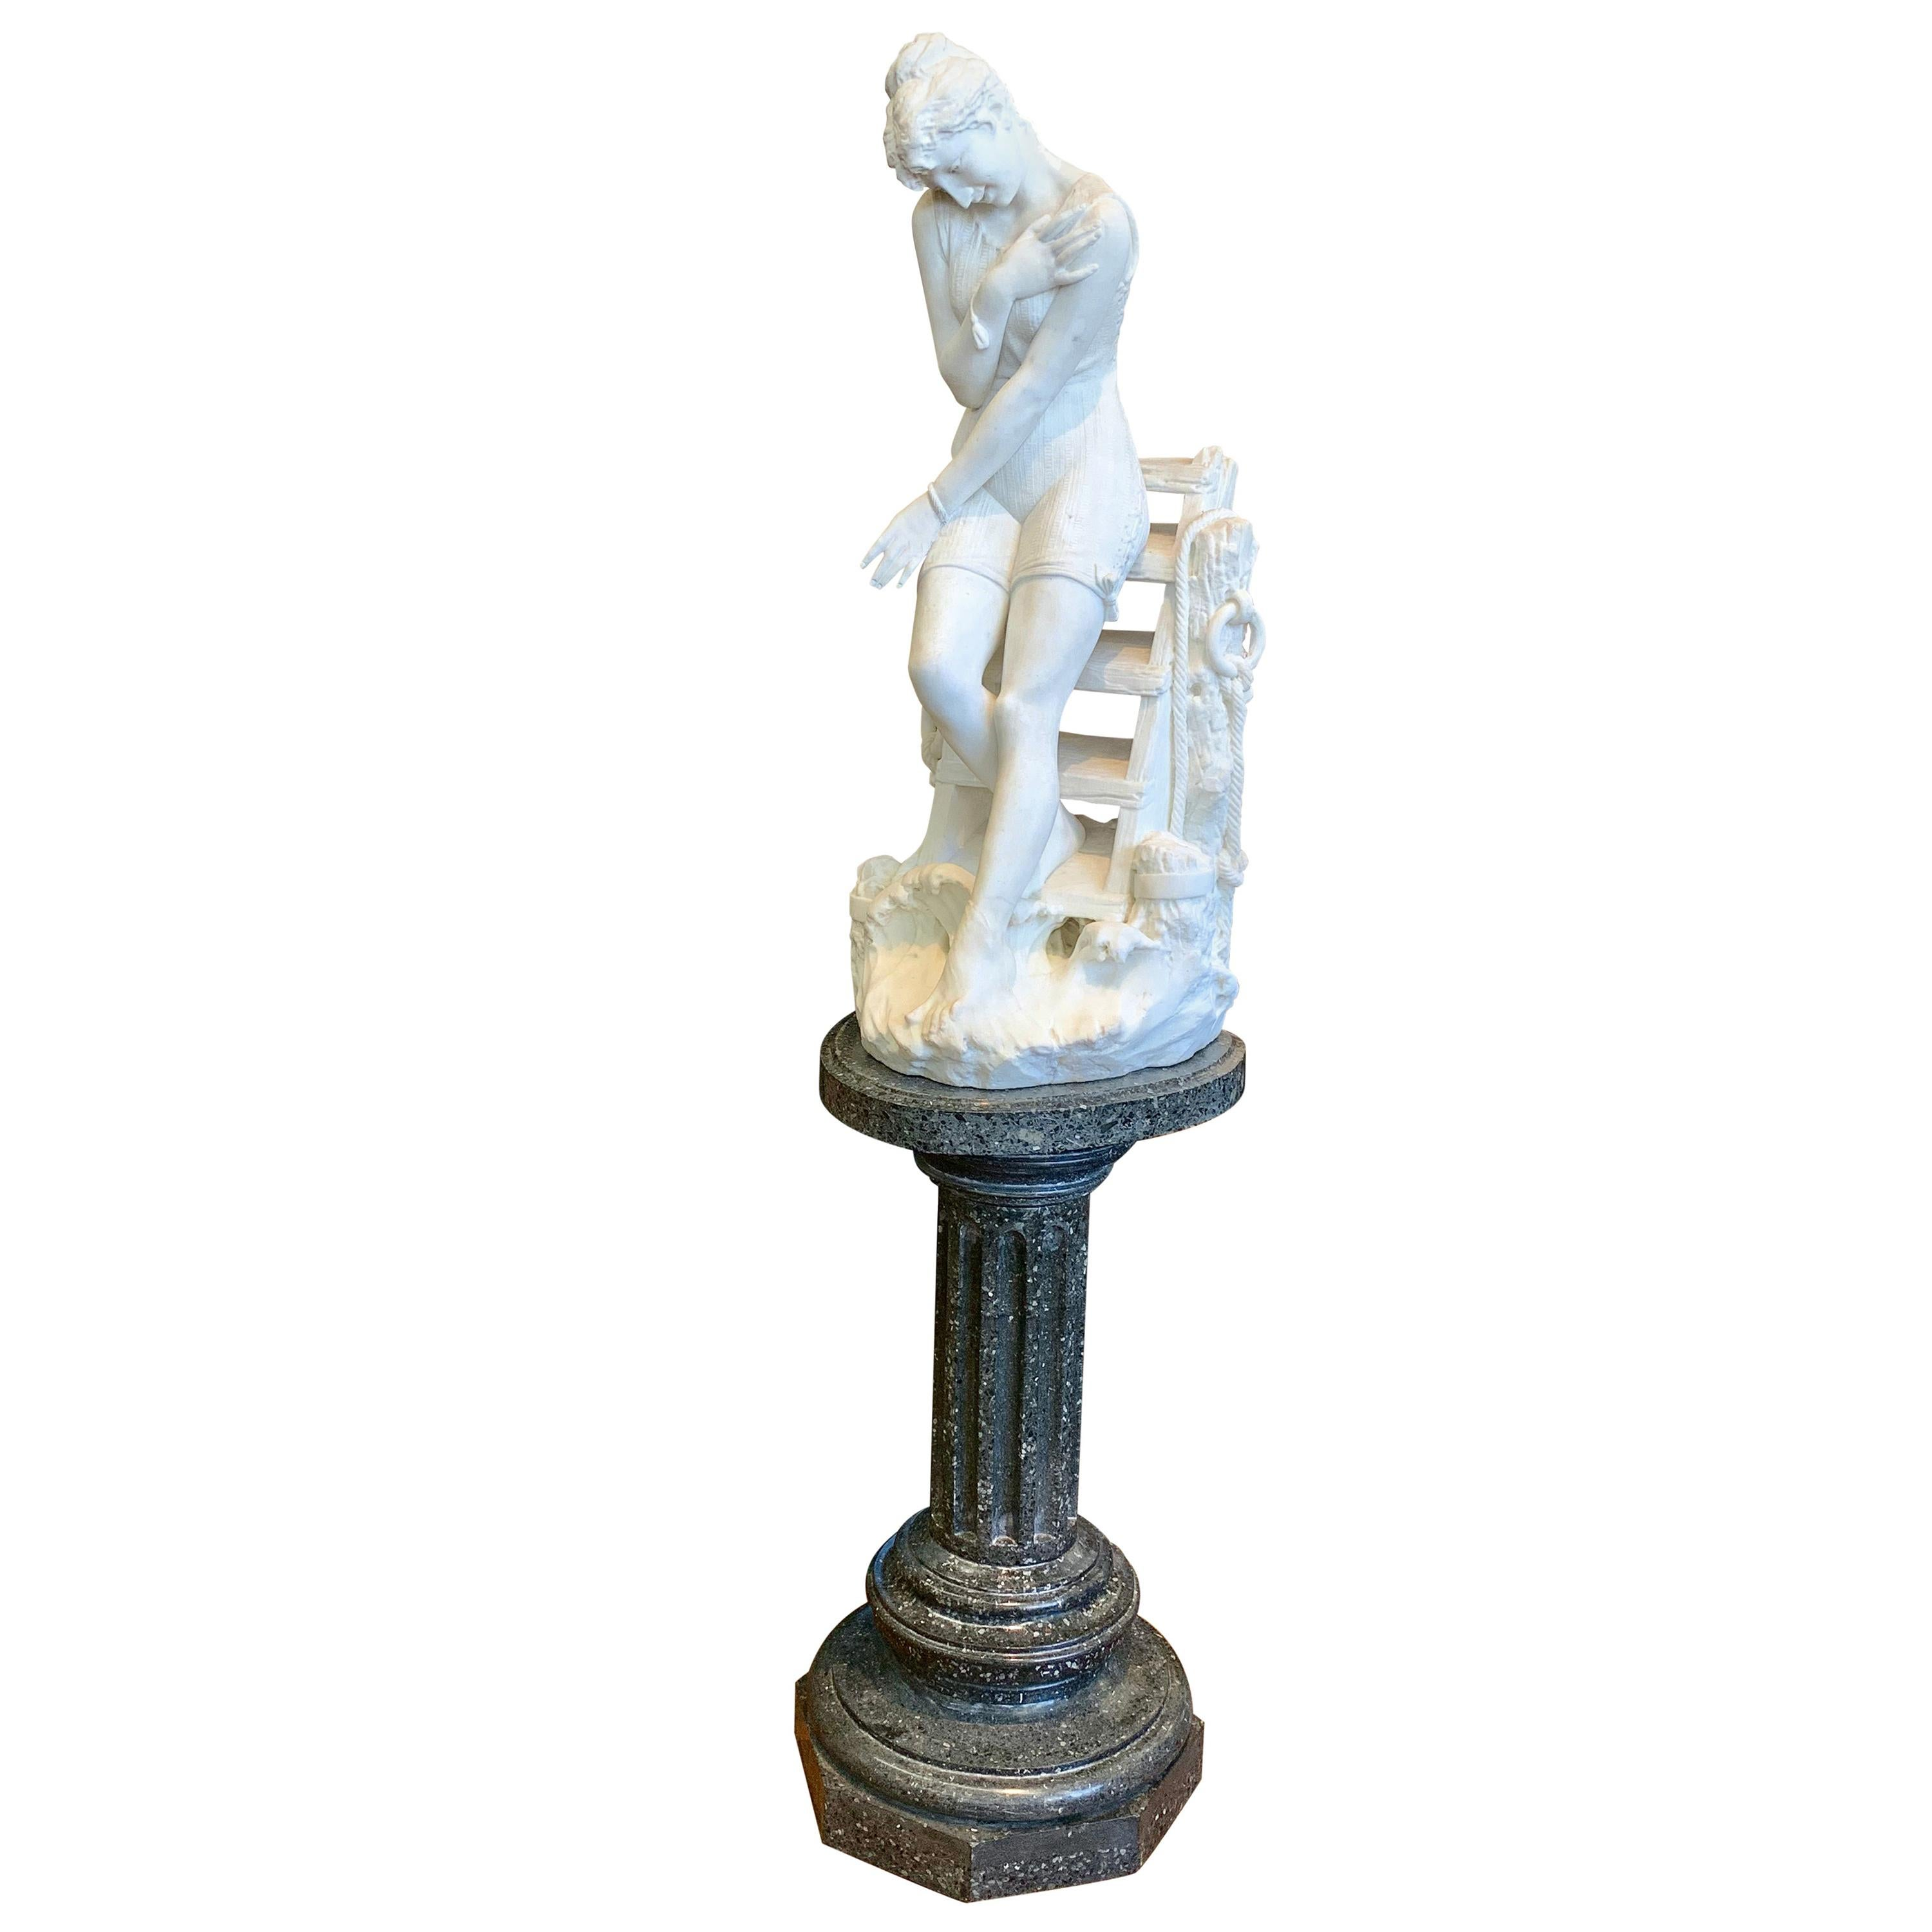 Marble Figure by Emilio Fiaschi, 'Testing The Waters'